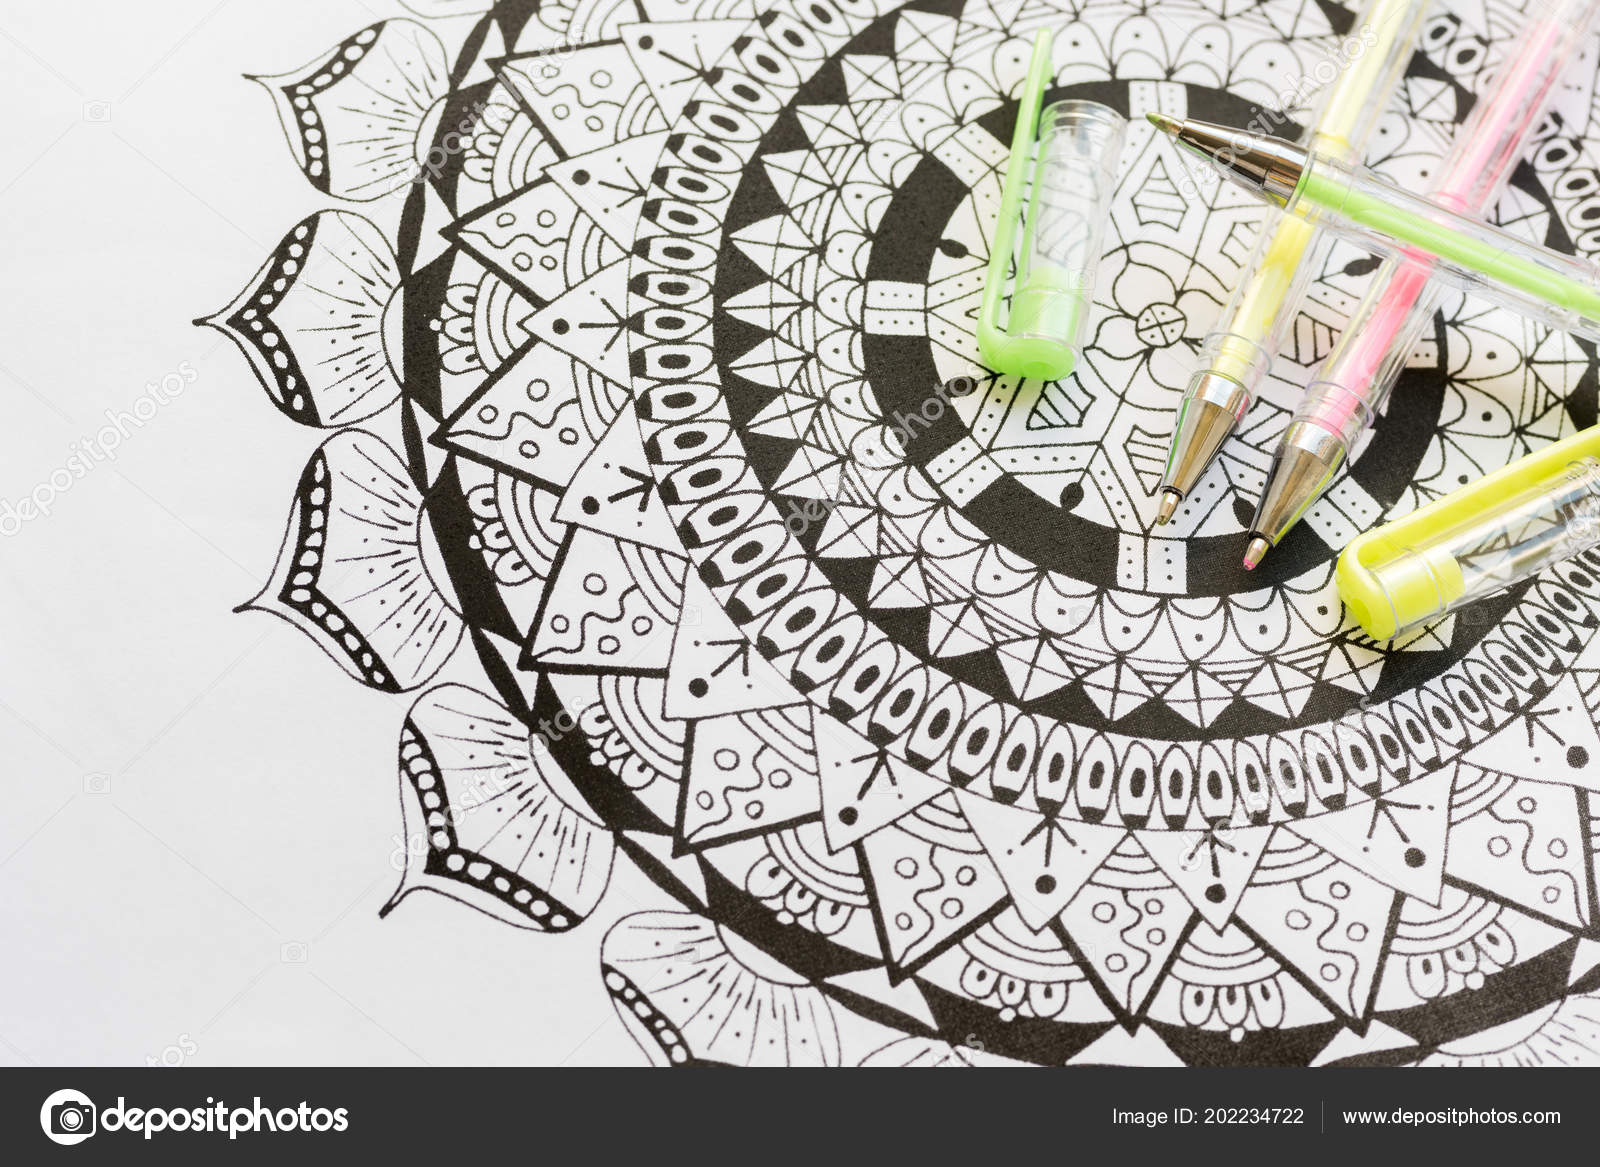 Adult Coloring Book New Stress Relieving Trend Art Therapy ...